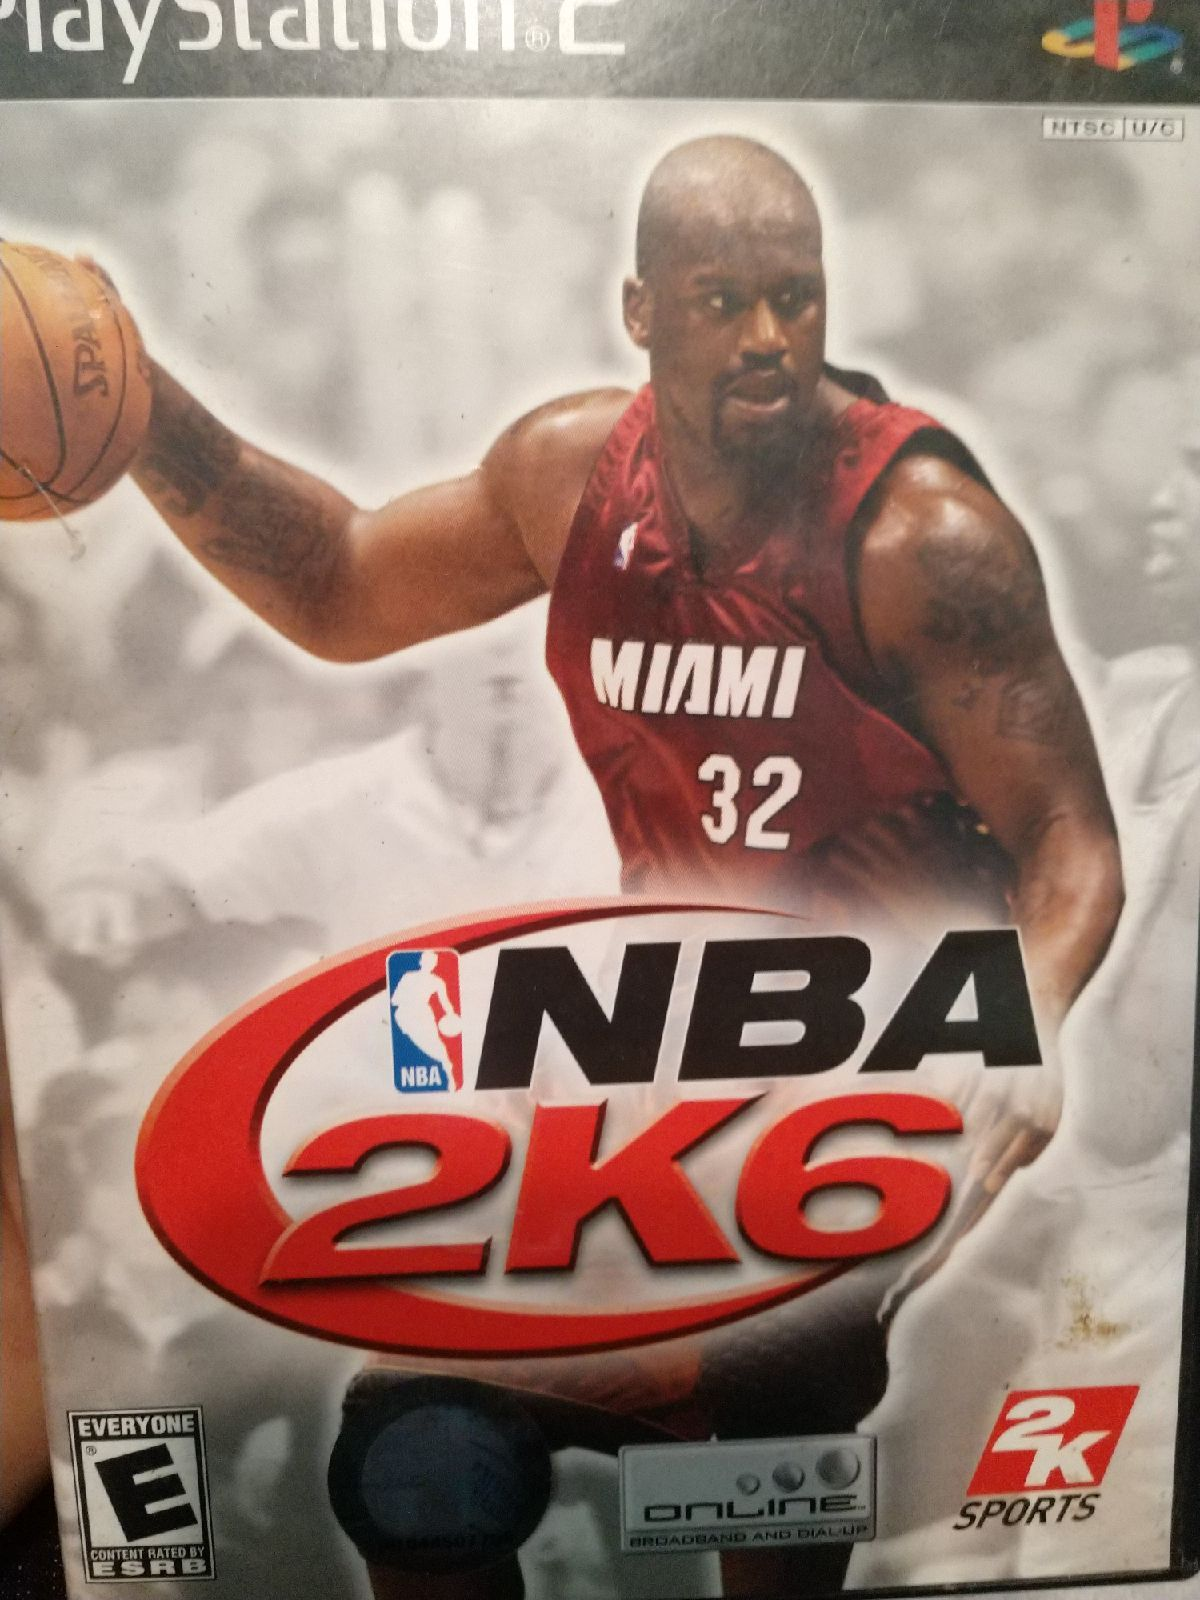 NBA 2k6 For PlayStation 2 in 2020 Nba video games, Xbox